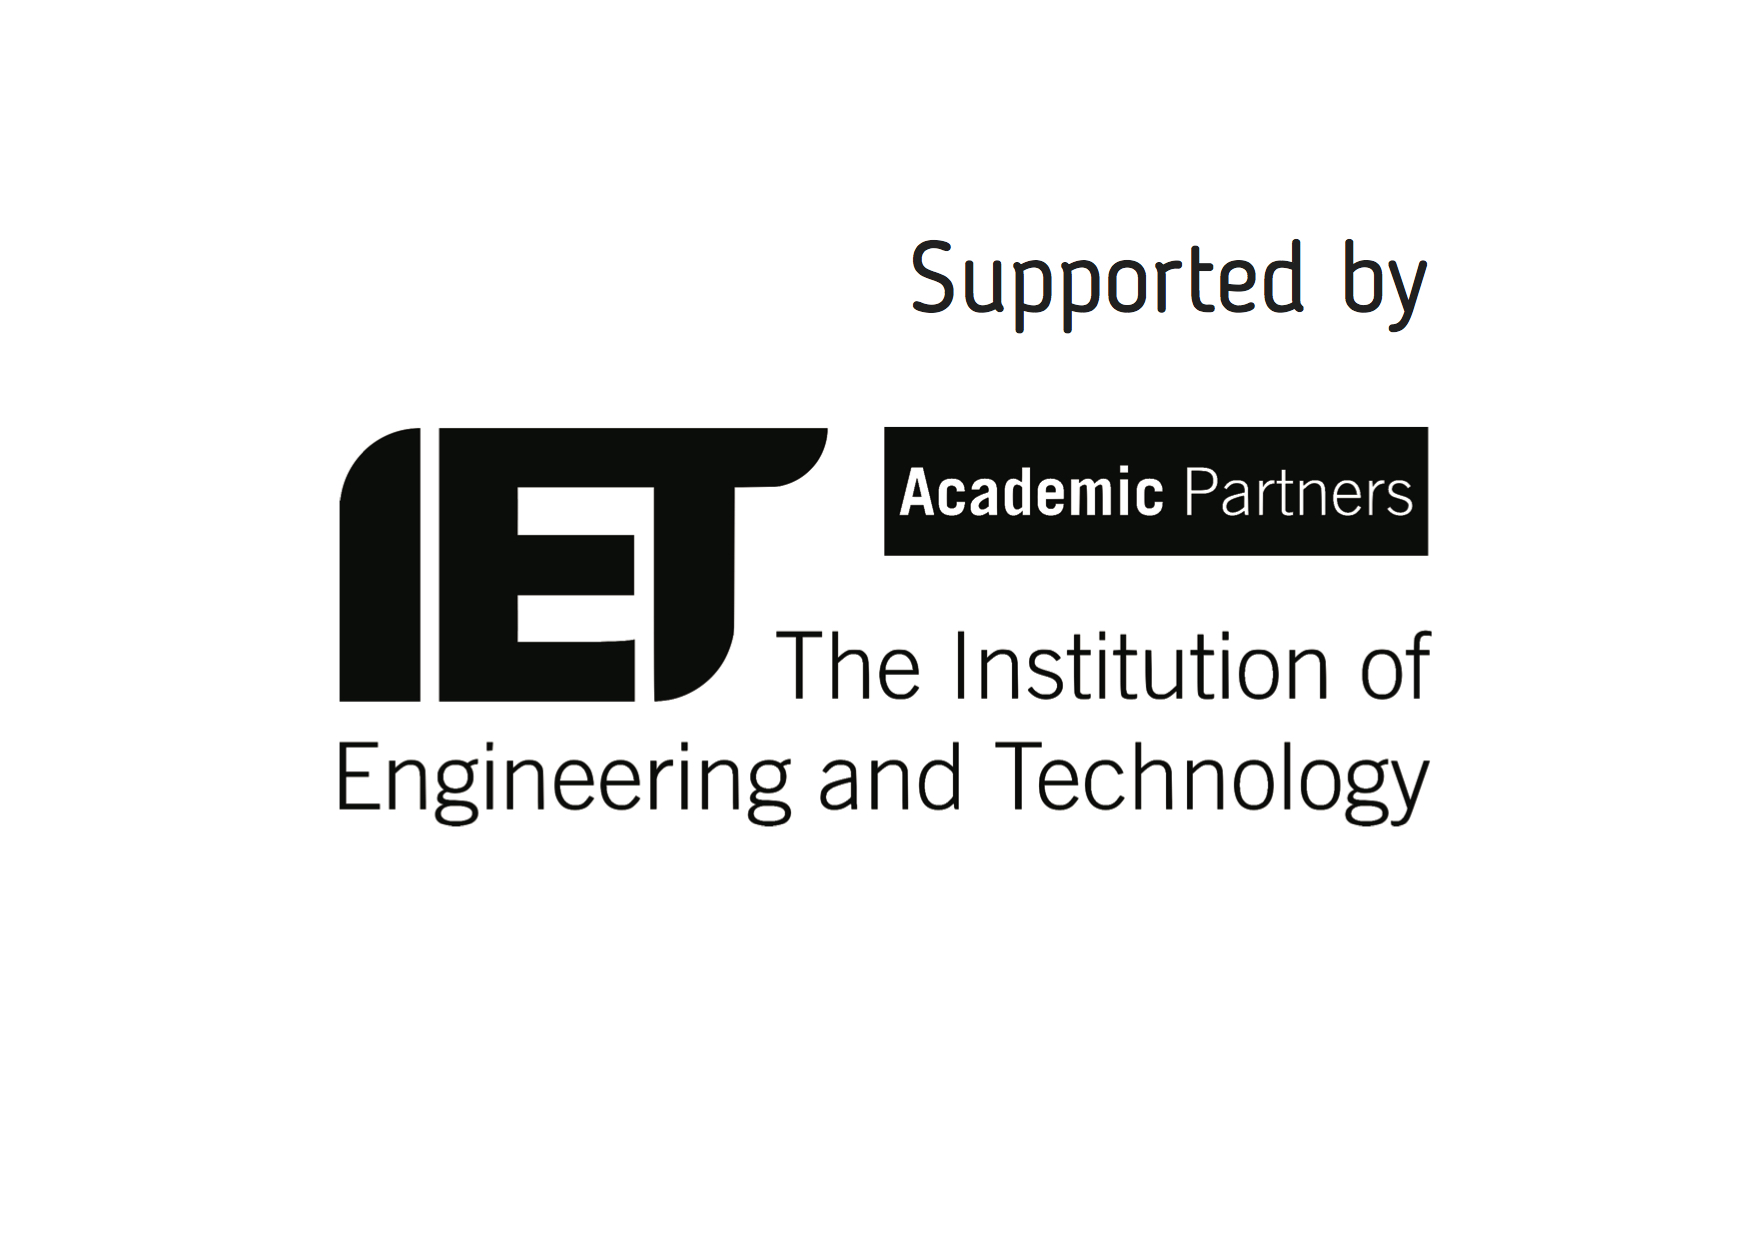 Supported by IET